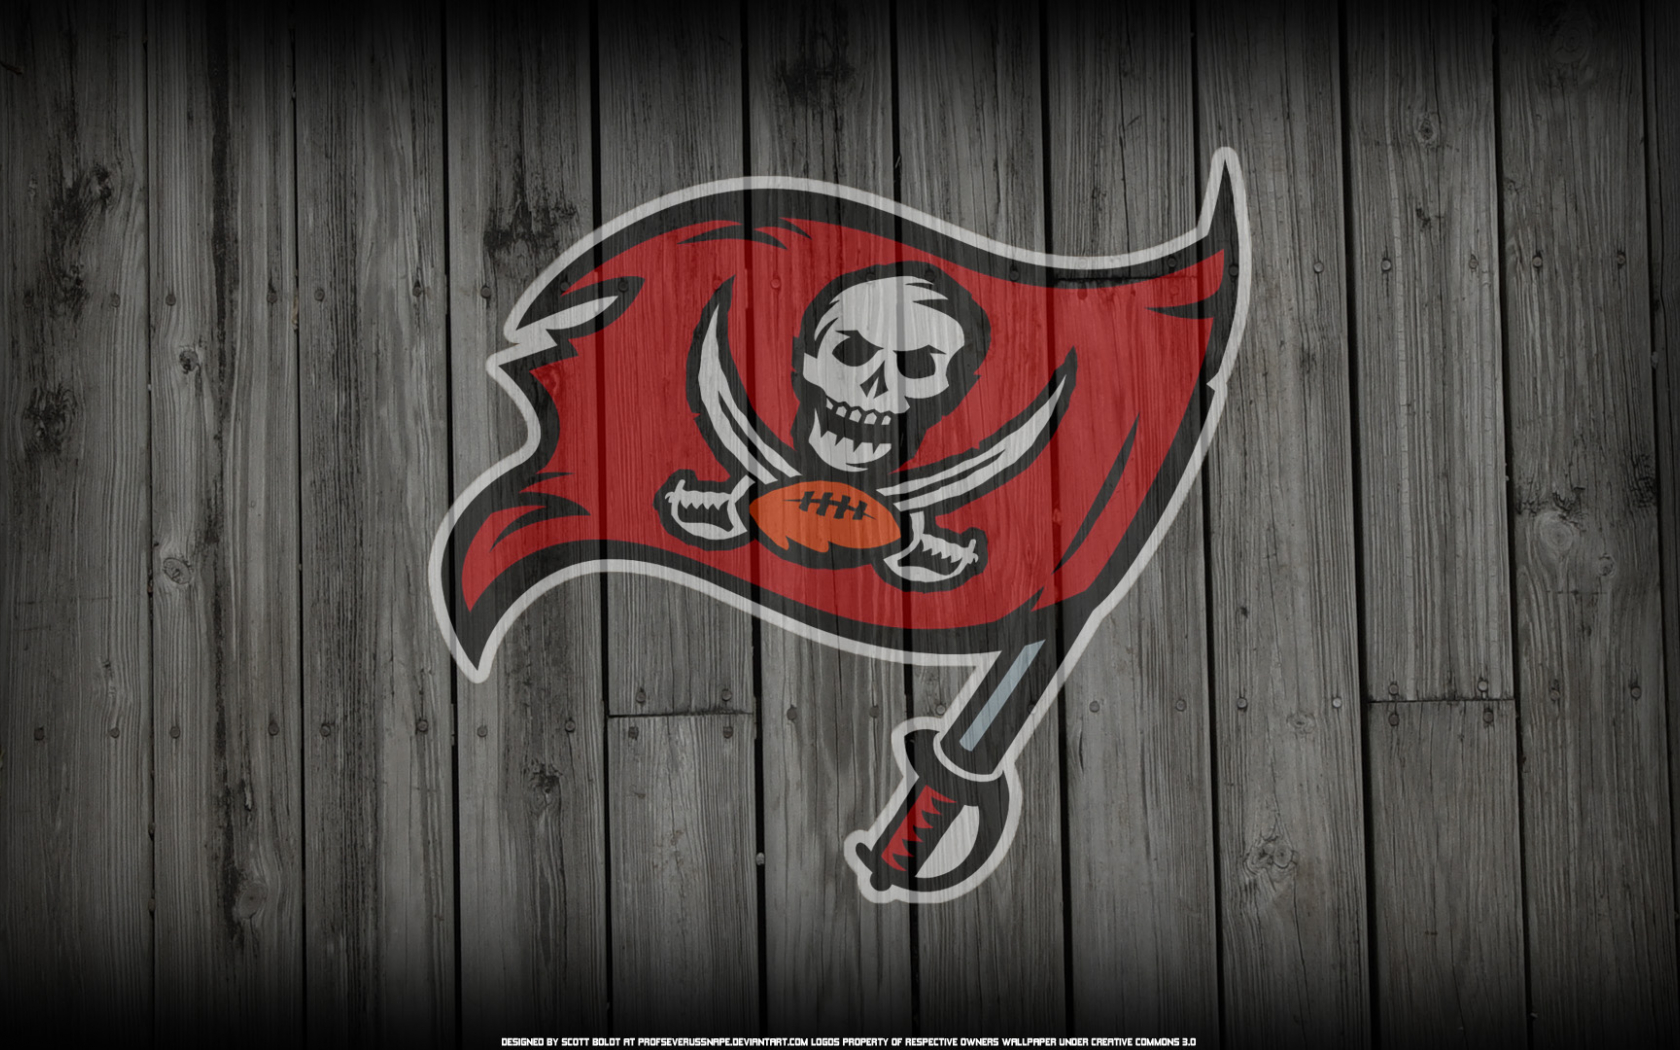 Free Download Tampa Bay Buccaneers Wallpapers Hd Wallpapers Early 1920x1080 For Your Desktop Mobile Tablet Explore 46 Tampa Bay Wallpaper Tampa Bay Rays Desktop Wallpaper Tampa Bay Buccaneers Wallpaper